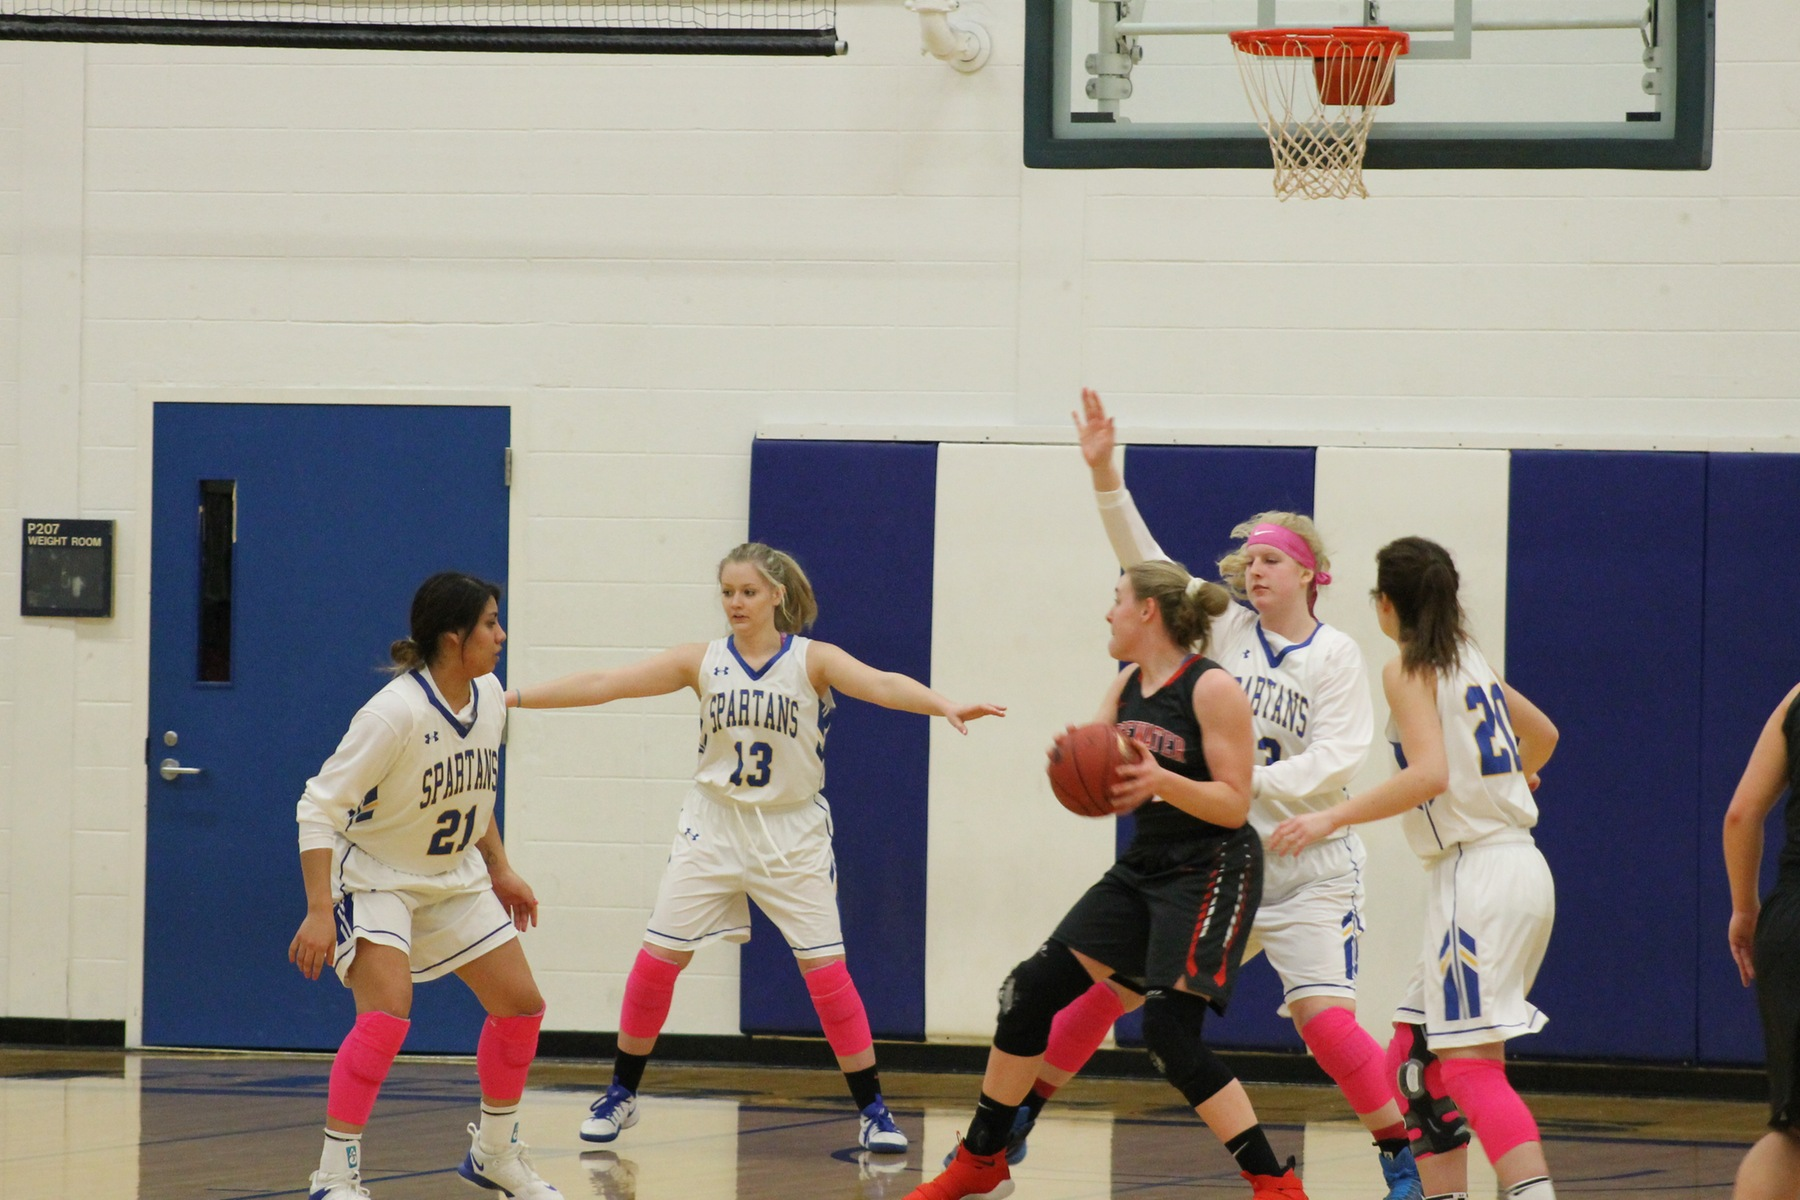 Lady Spartans beat Warriors